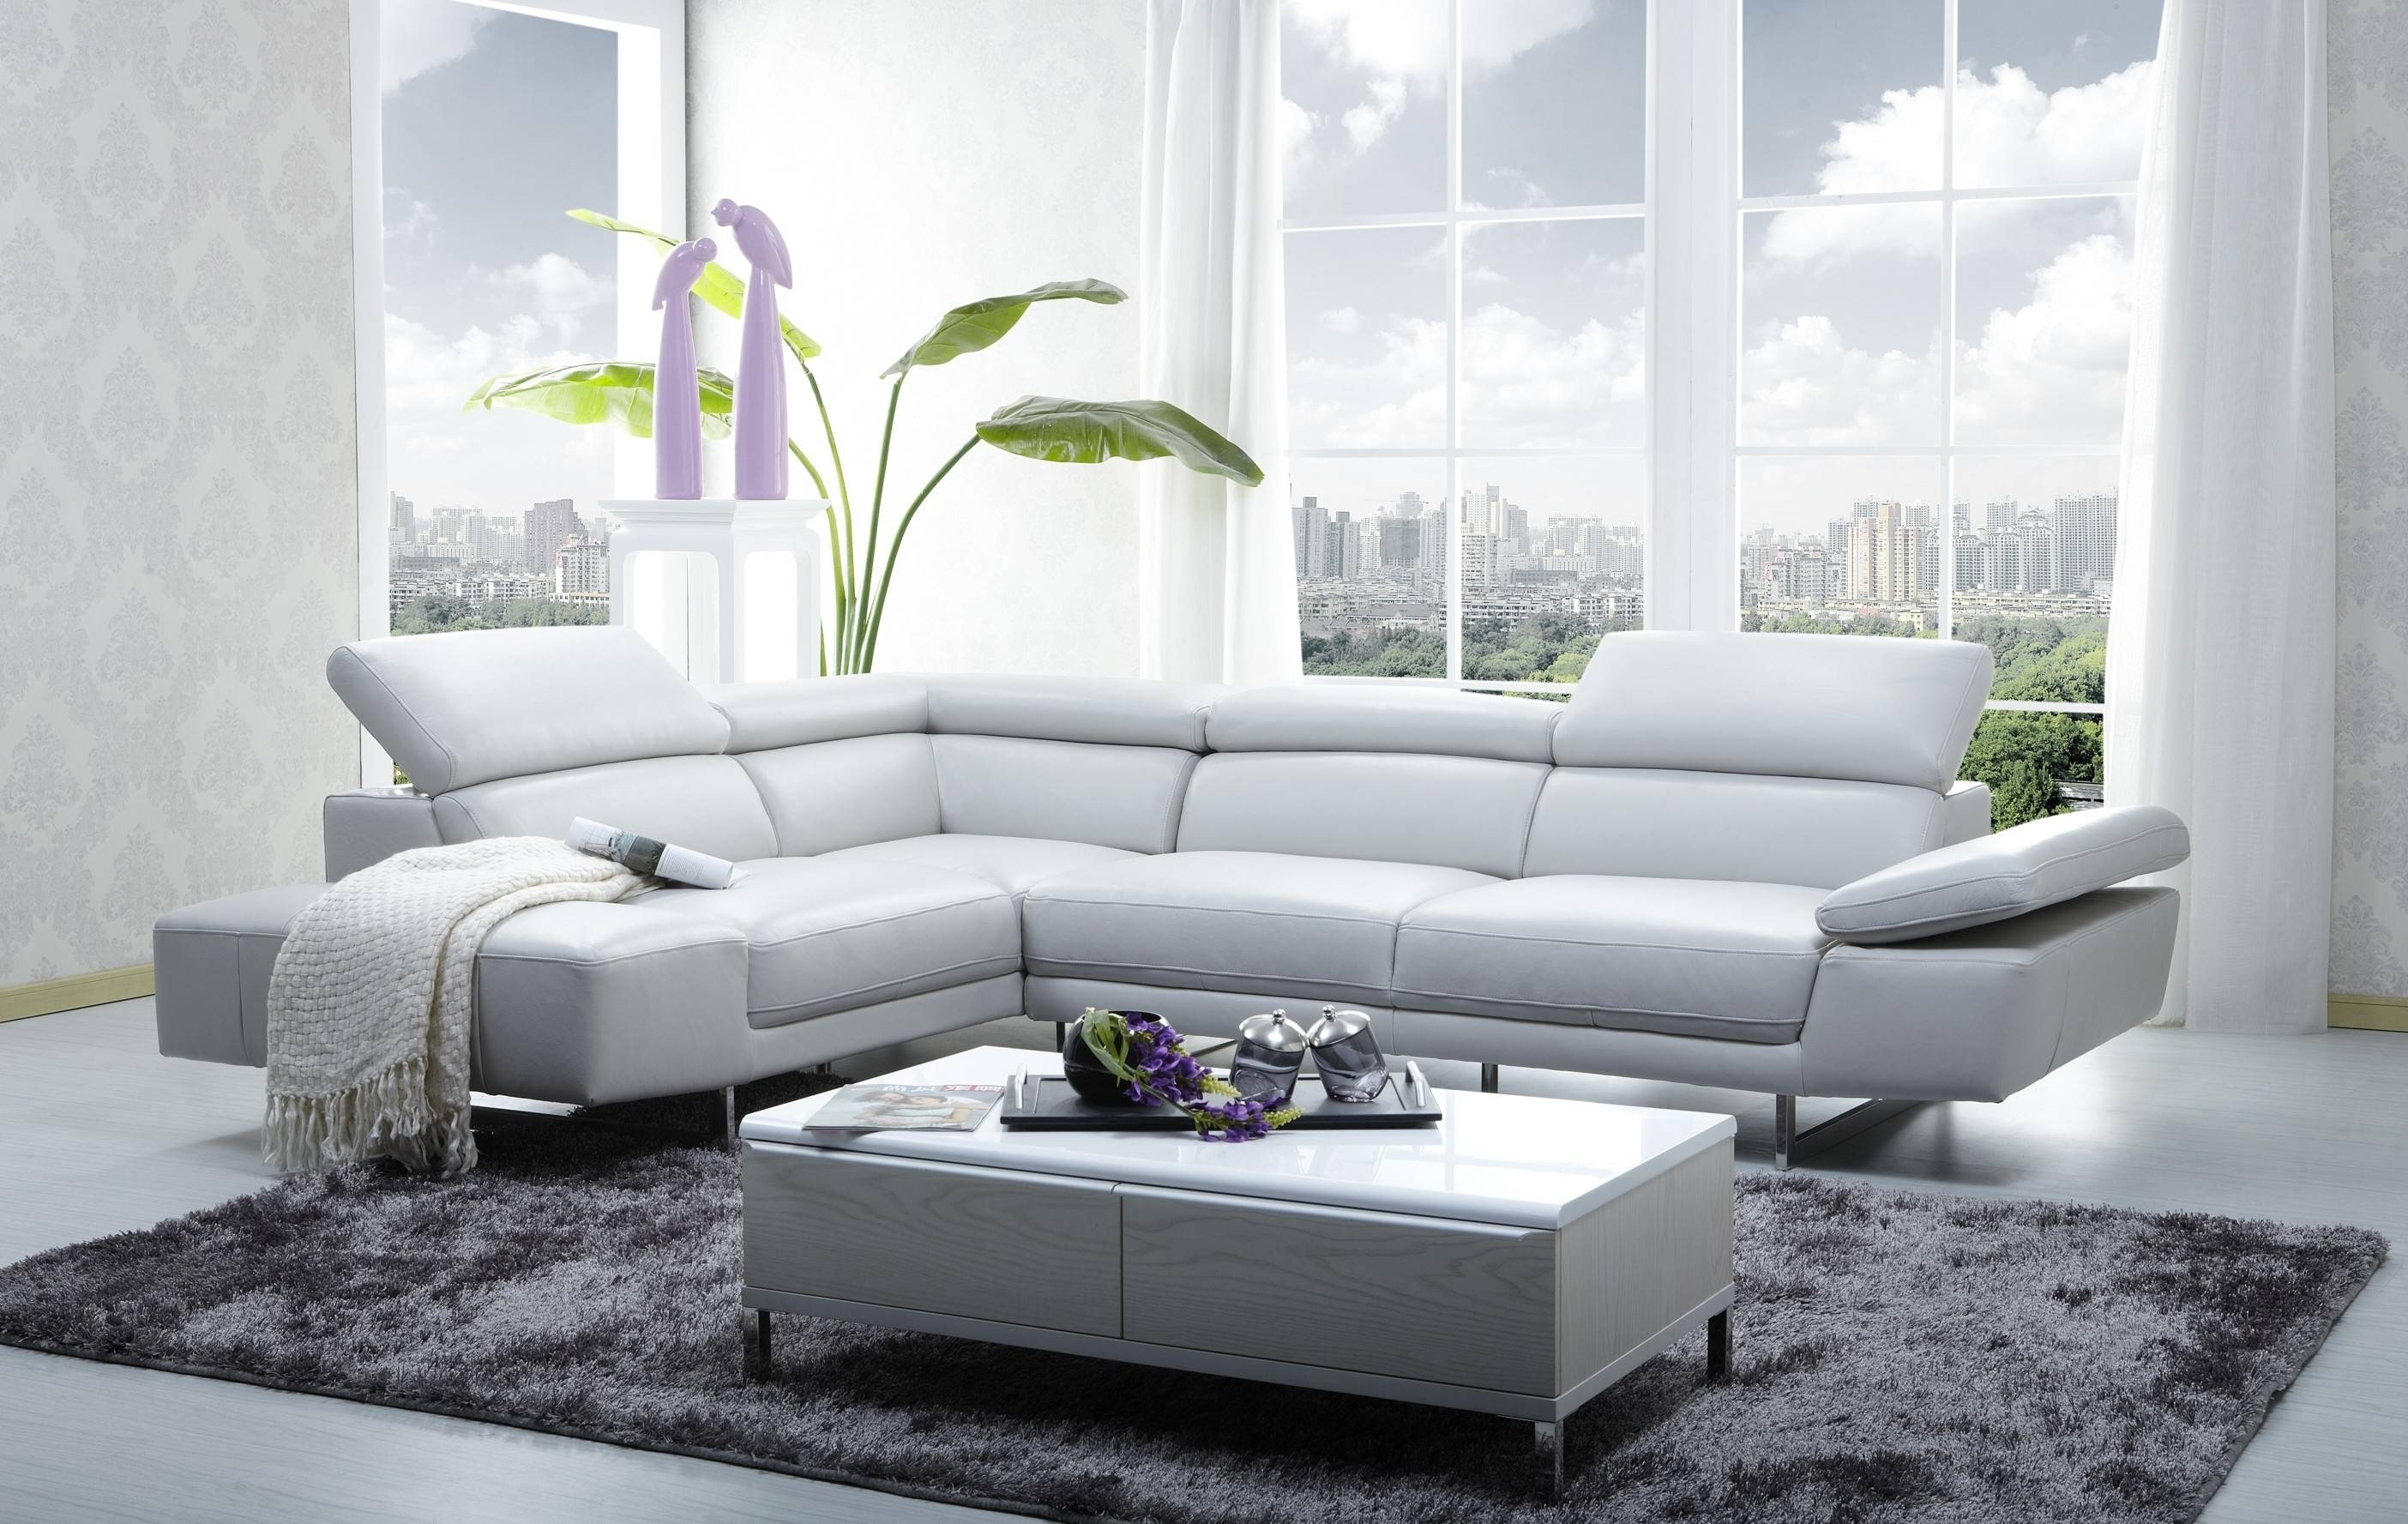 Grande Prairie Ab Sectional Sofas Regarding Well Known Beautiful Sectional Sofa For Sale (35 Photos) (Gallery 15 of 15)